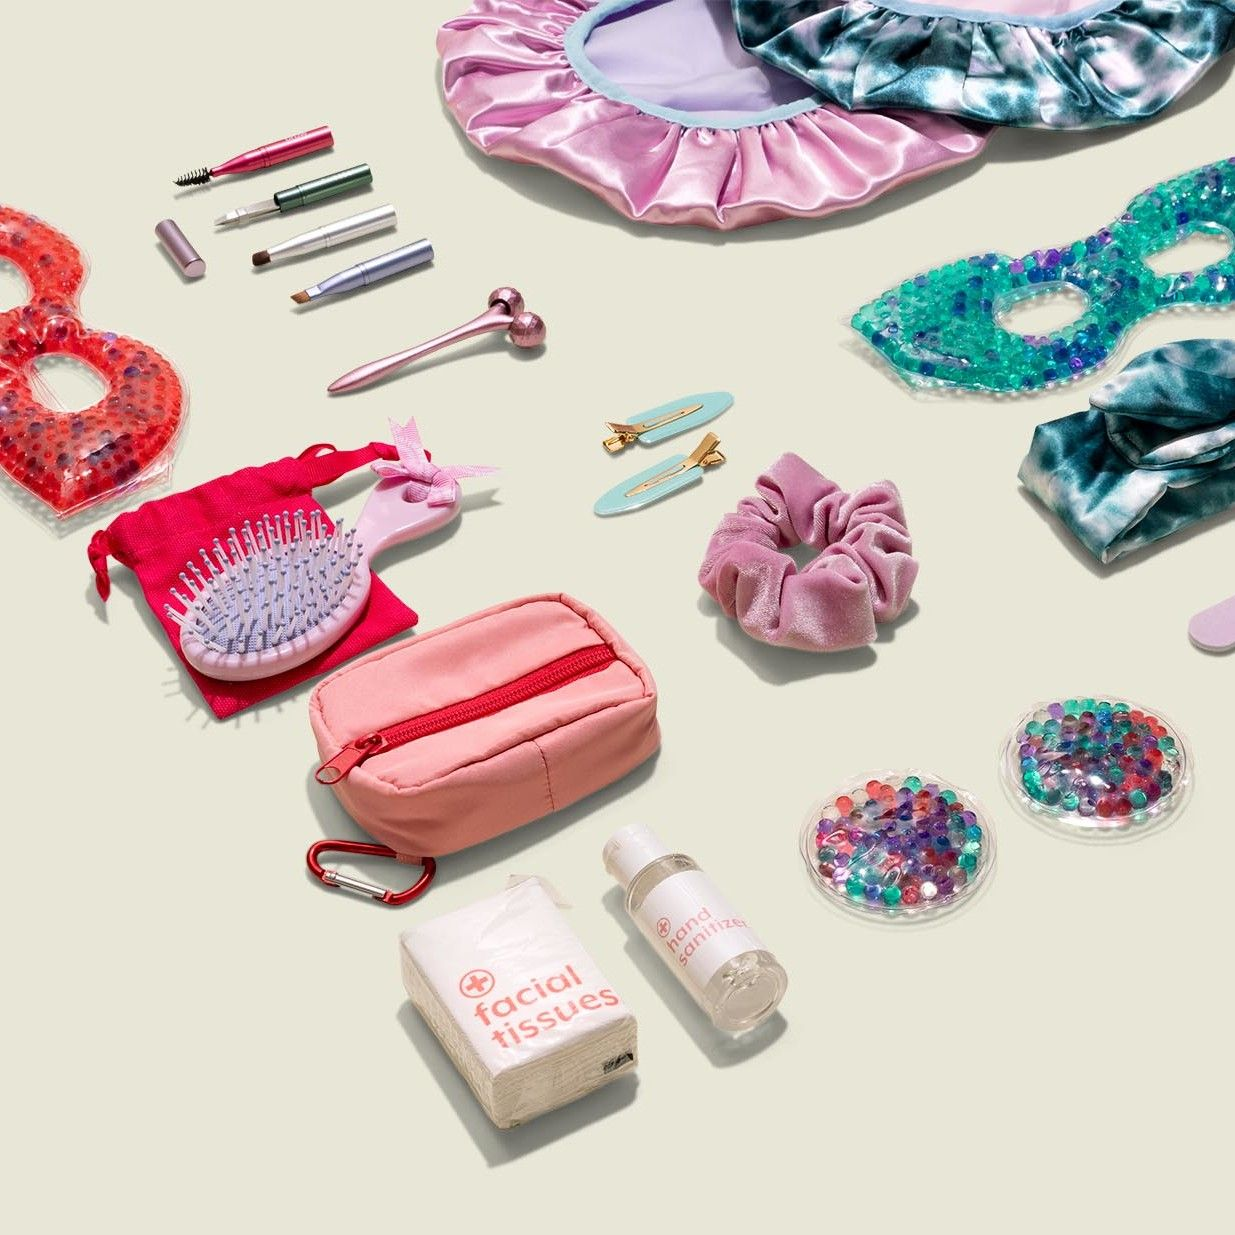 Collection of pouches, hair accessories and beauty products